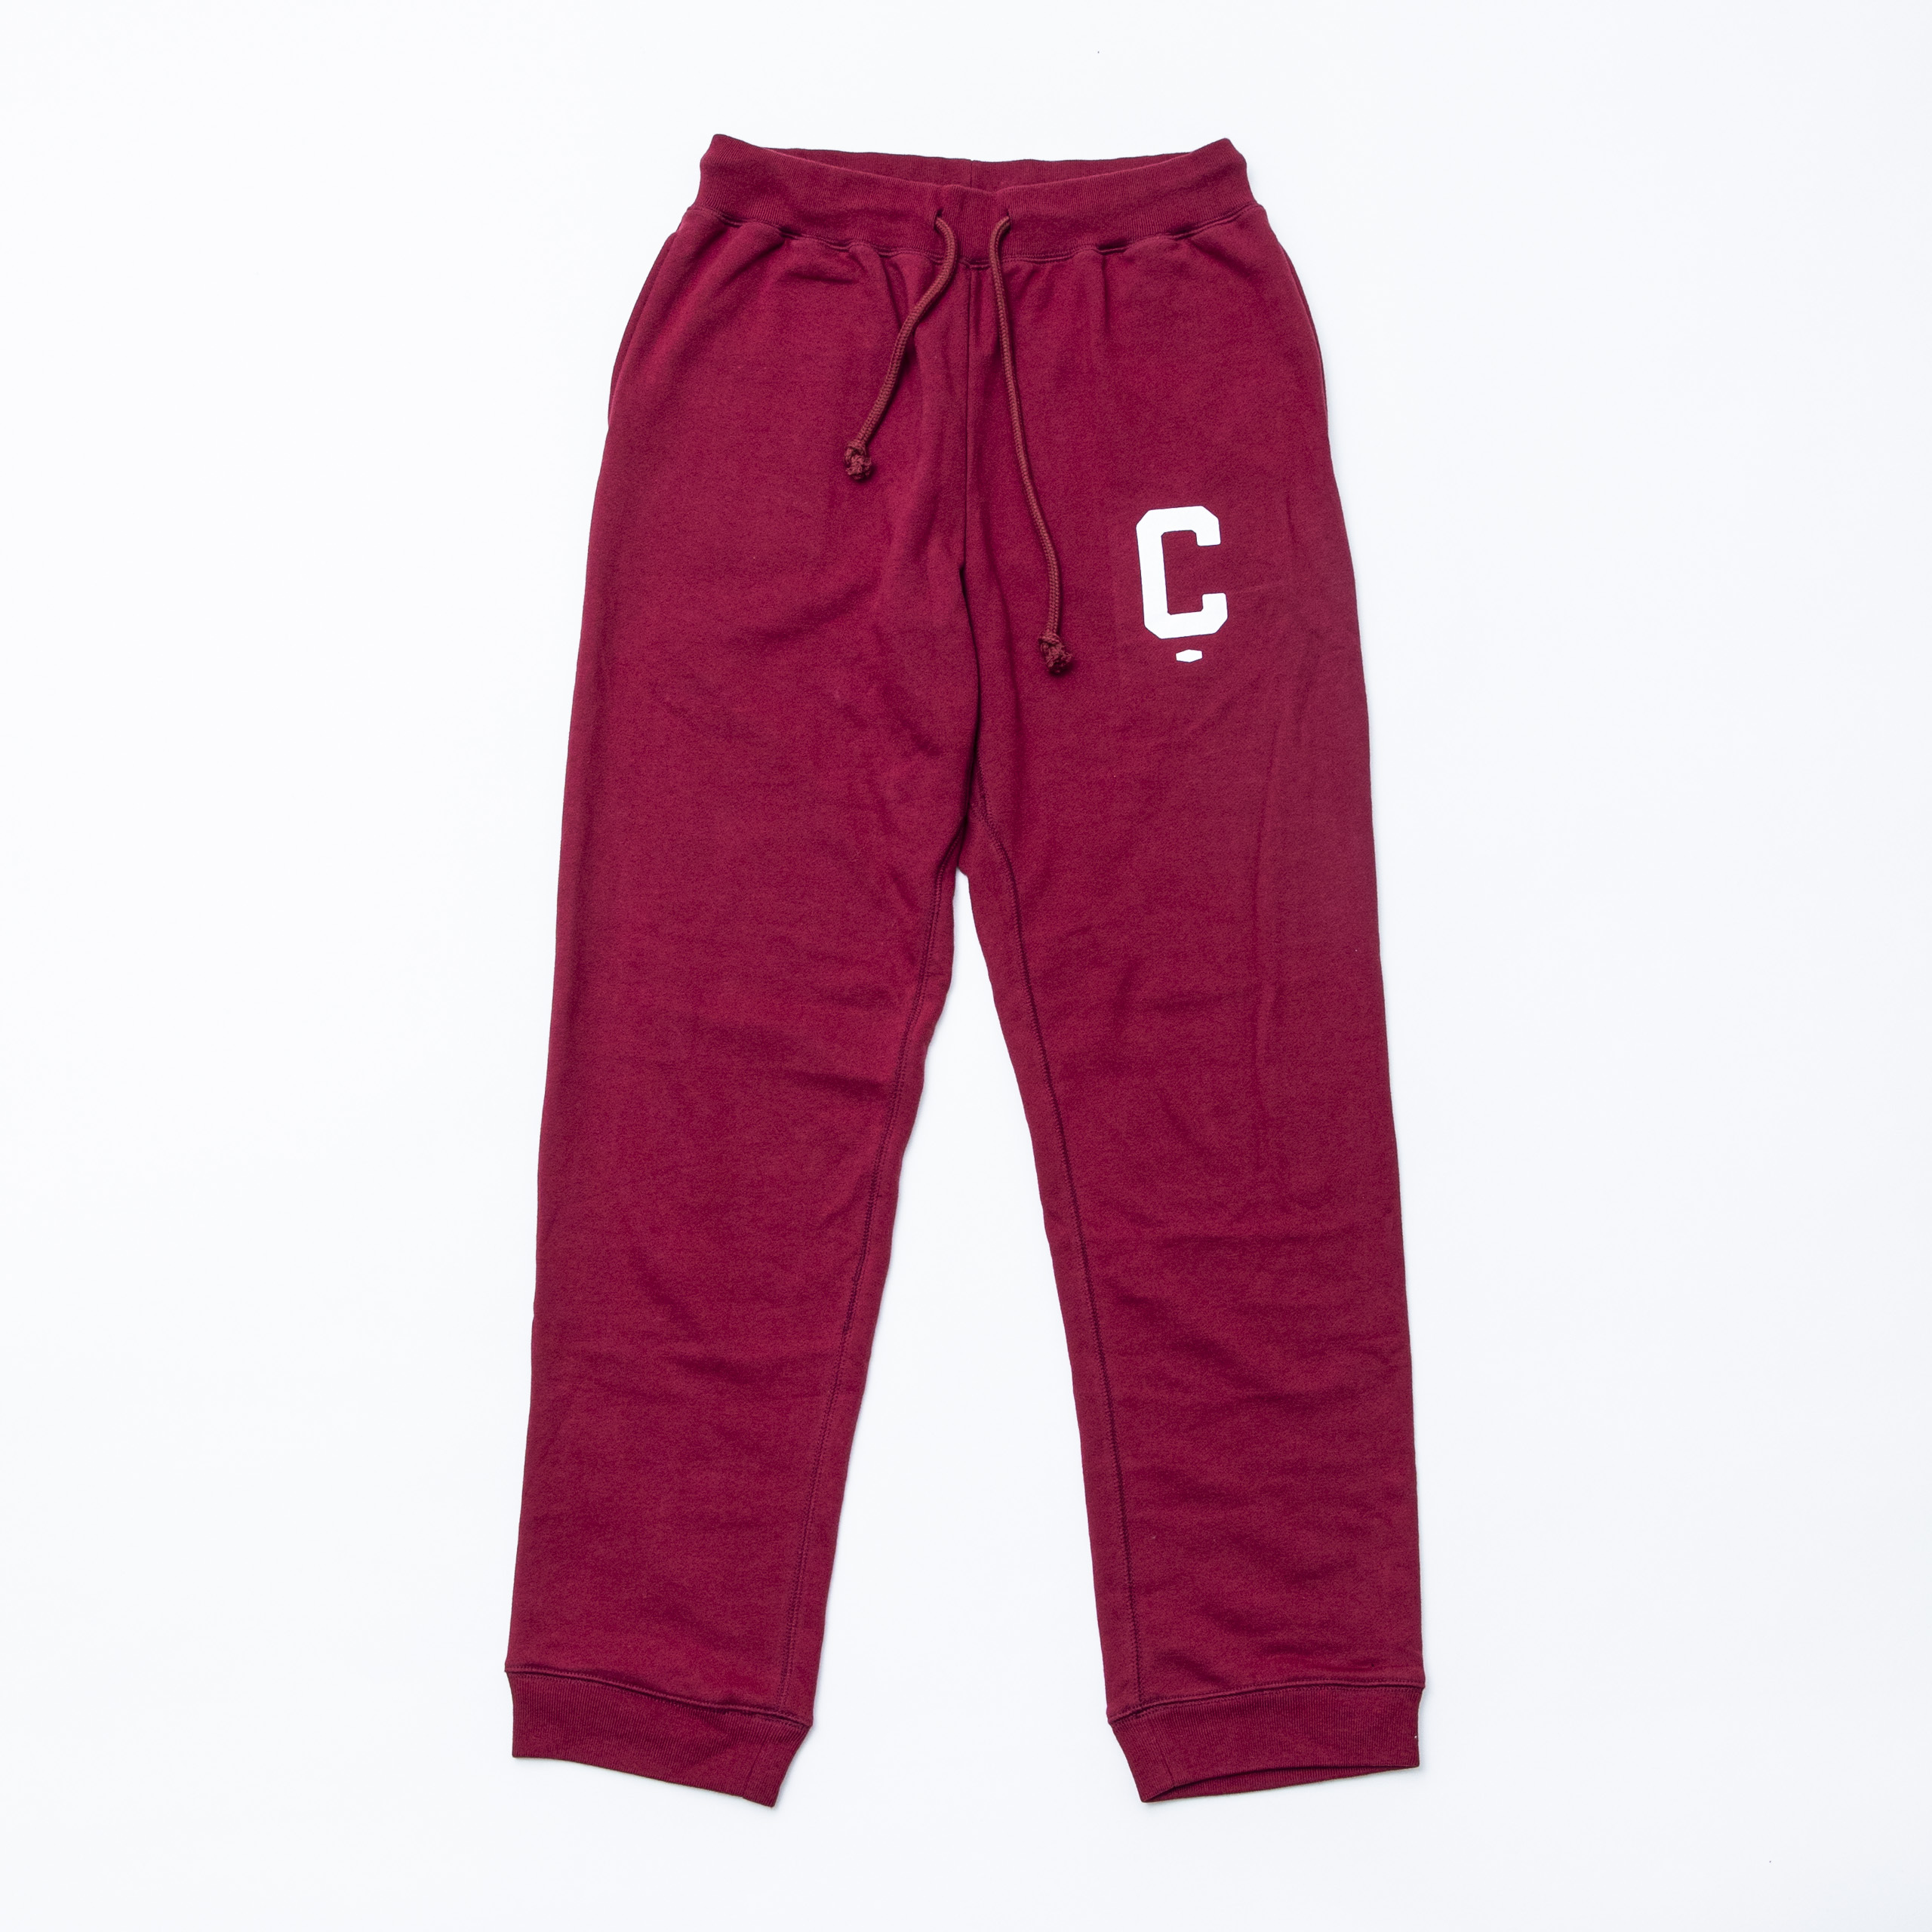 Big C Sweat pants  BURGUNDY